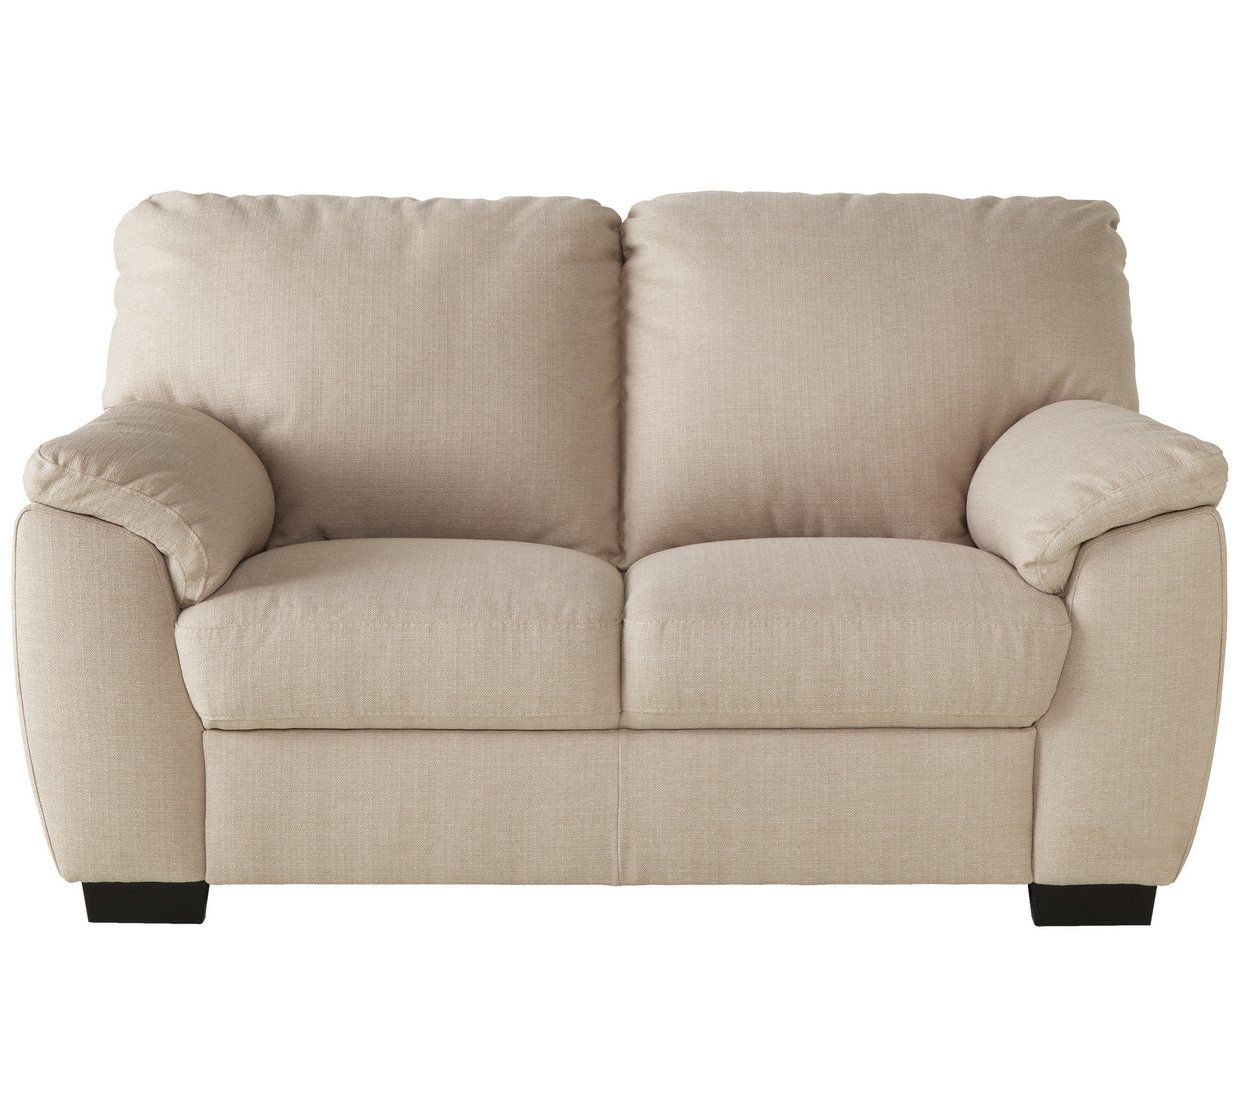 Amazing Home Milano Fabric 2 Seater And 3 Seater Sofa Beige Bralicious Painted Fabric Chair Ideas Braliciousco